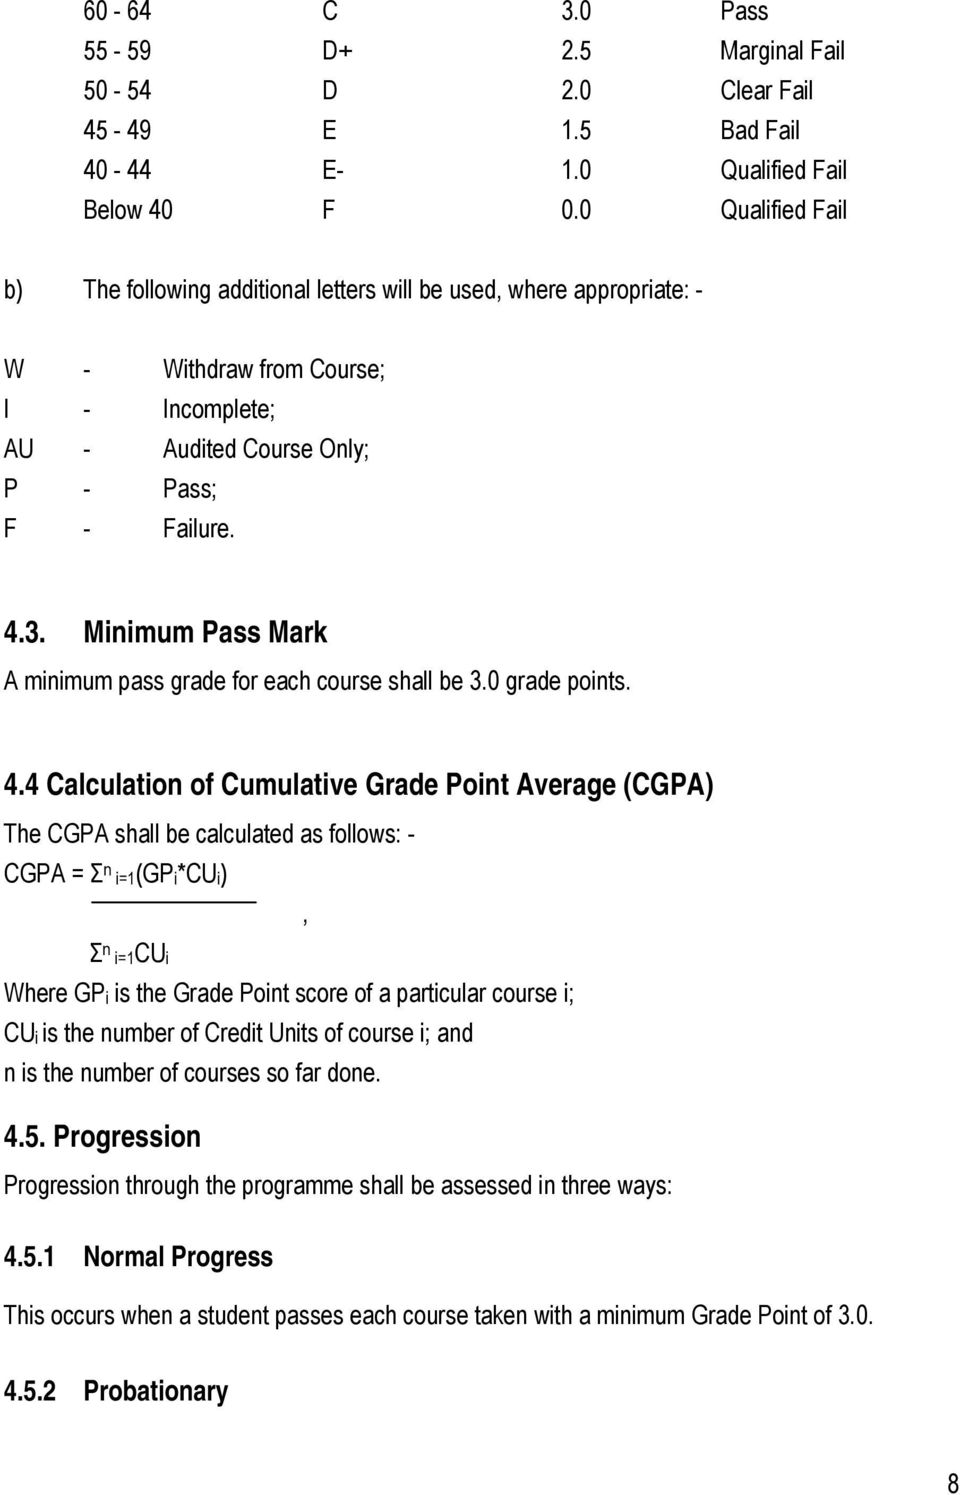 Minimum Pass Mark A minimum pass grade for each course shall be 3.0 grade points. 4.